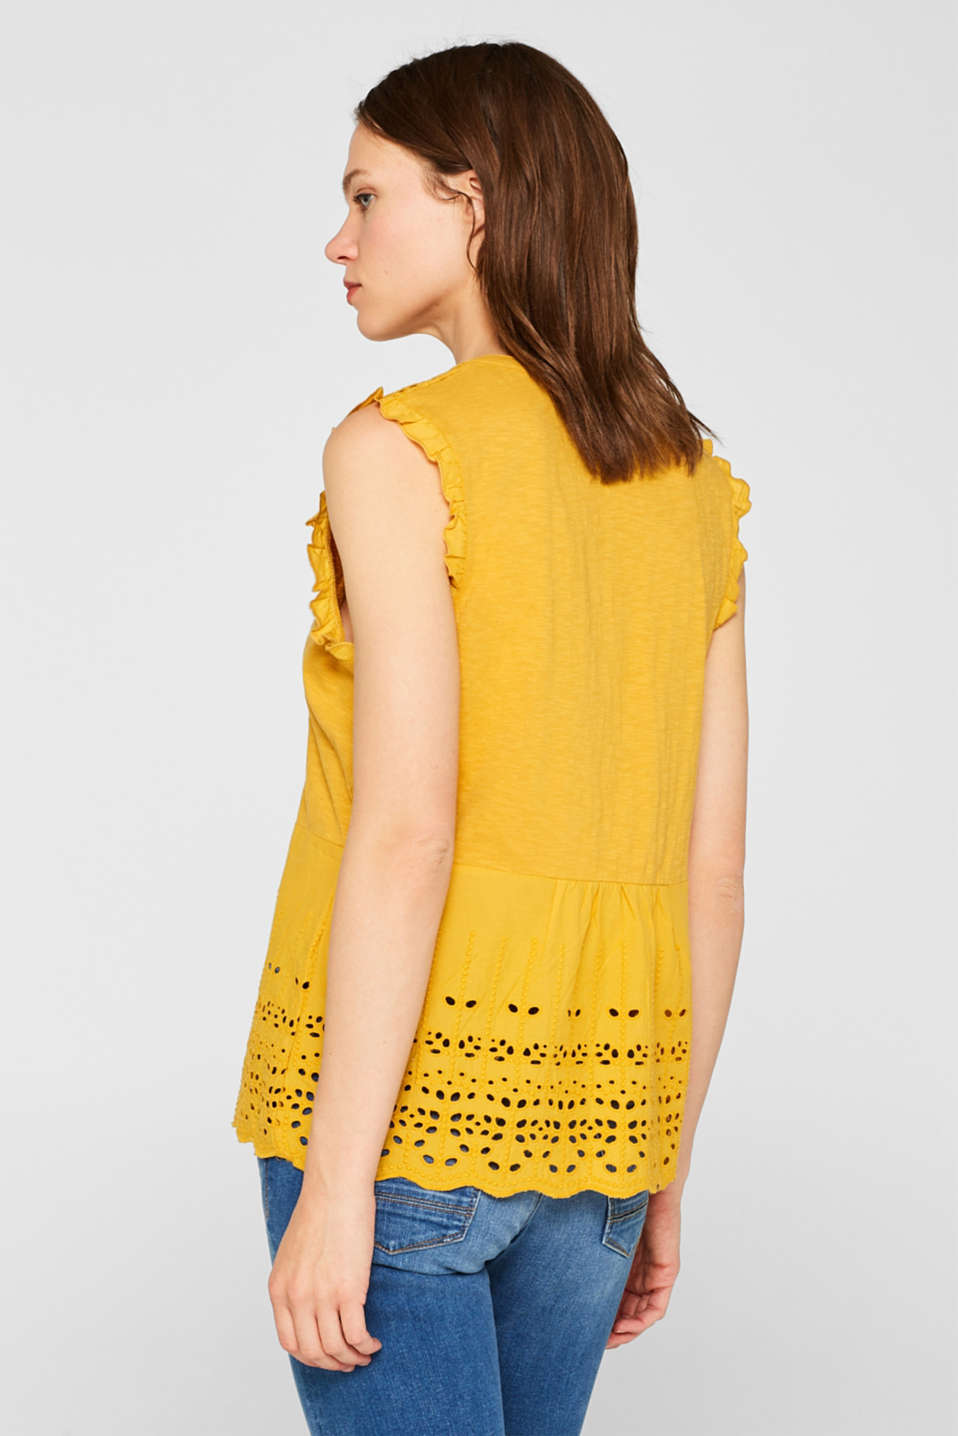 Blouse top with broderie anglaise, 100% cotton, BRASS YELLOW, detail image number 3